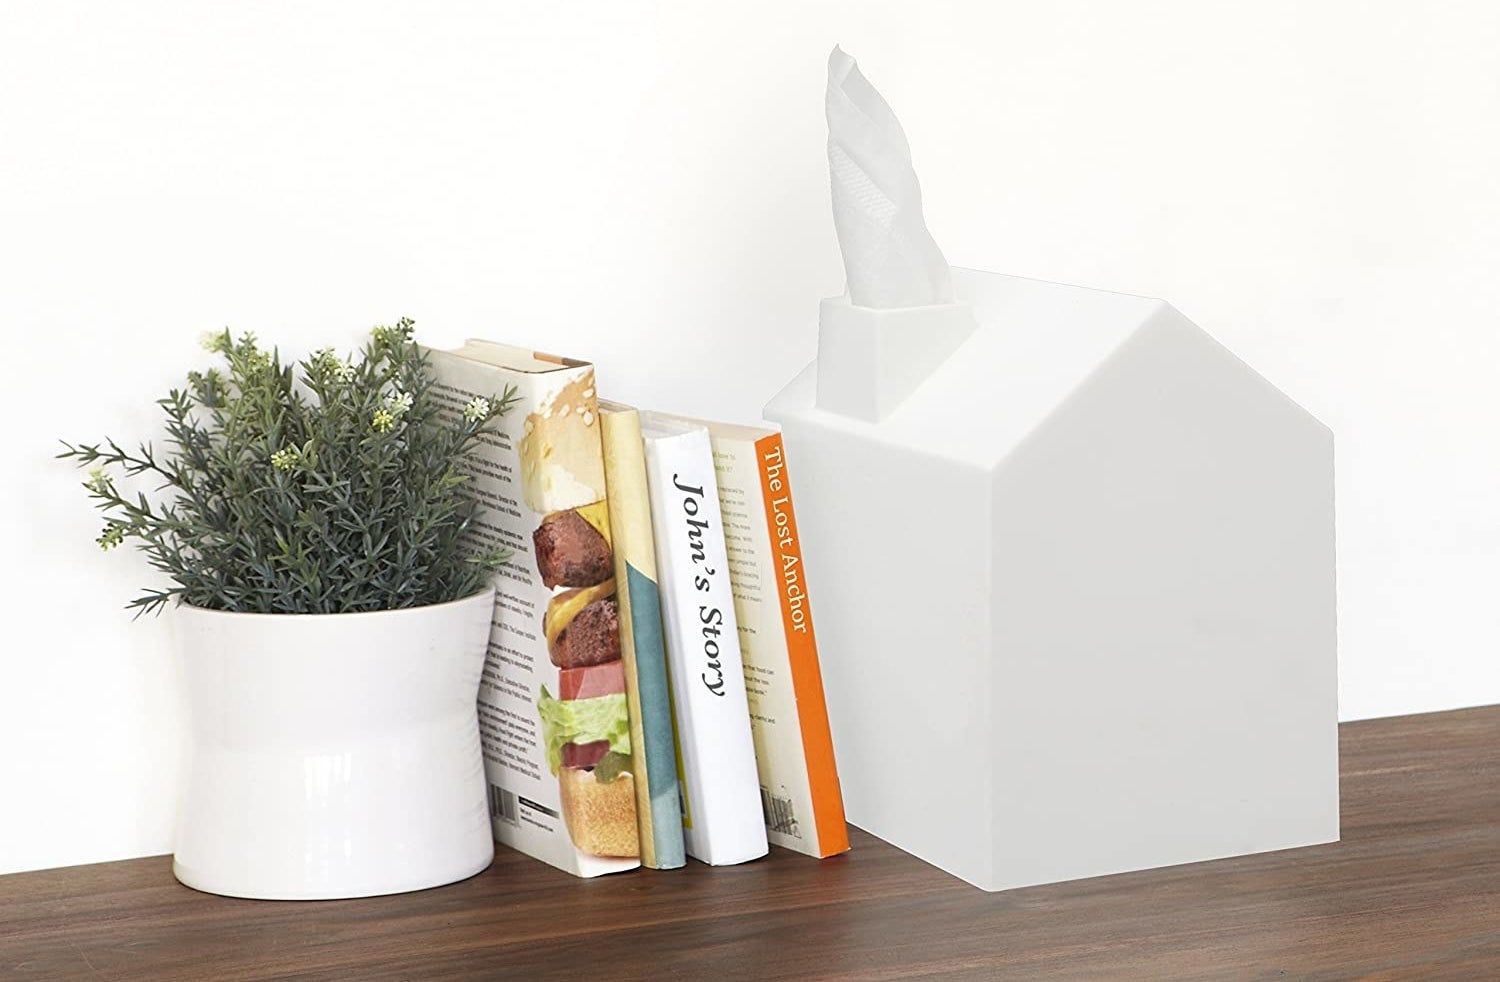 White house-shaped tissue box next to stack of books on a shelf